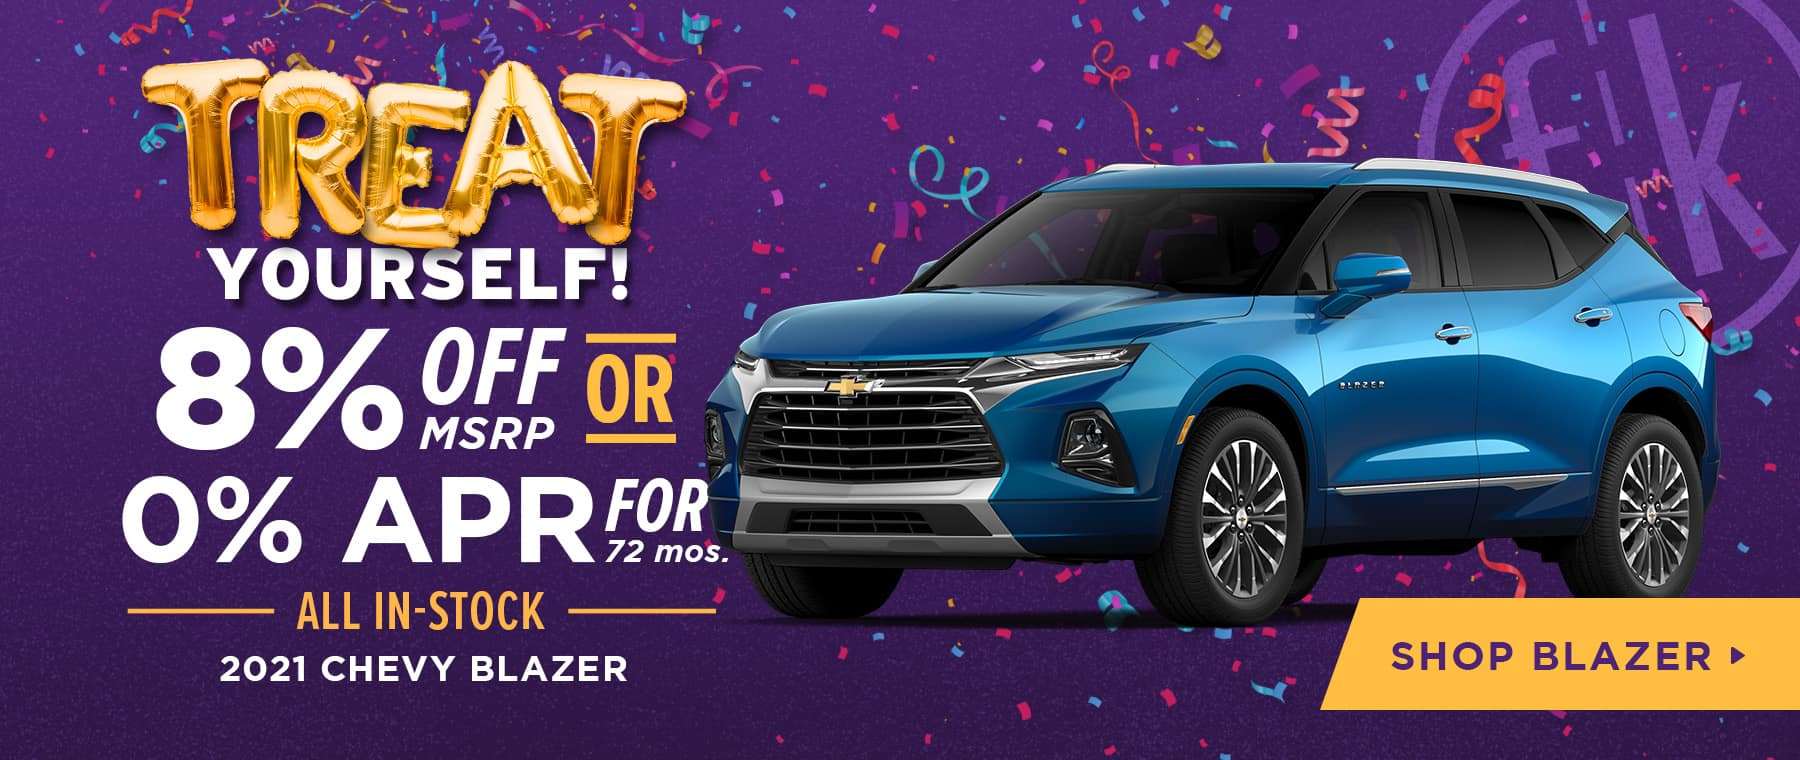 8% Off OR 0% APR for 72 mos. All In-Stock 2021 Chevy Blazer